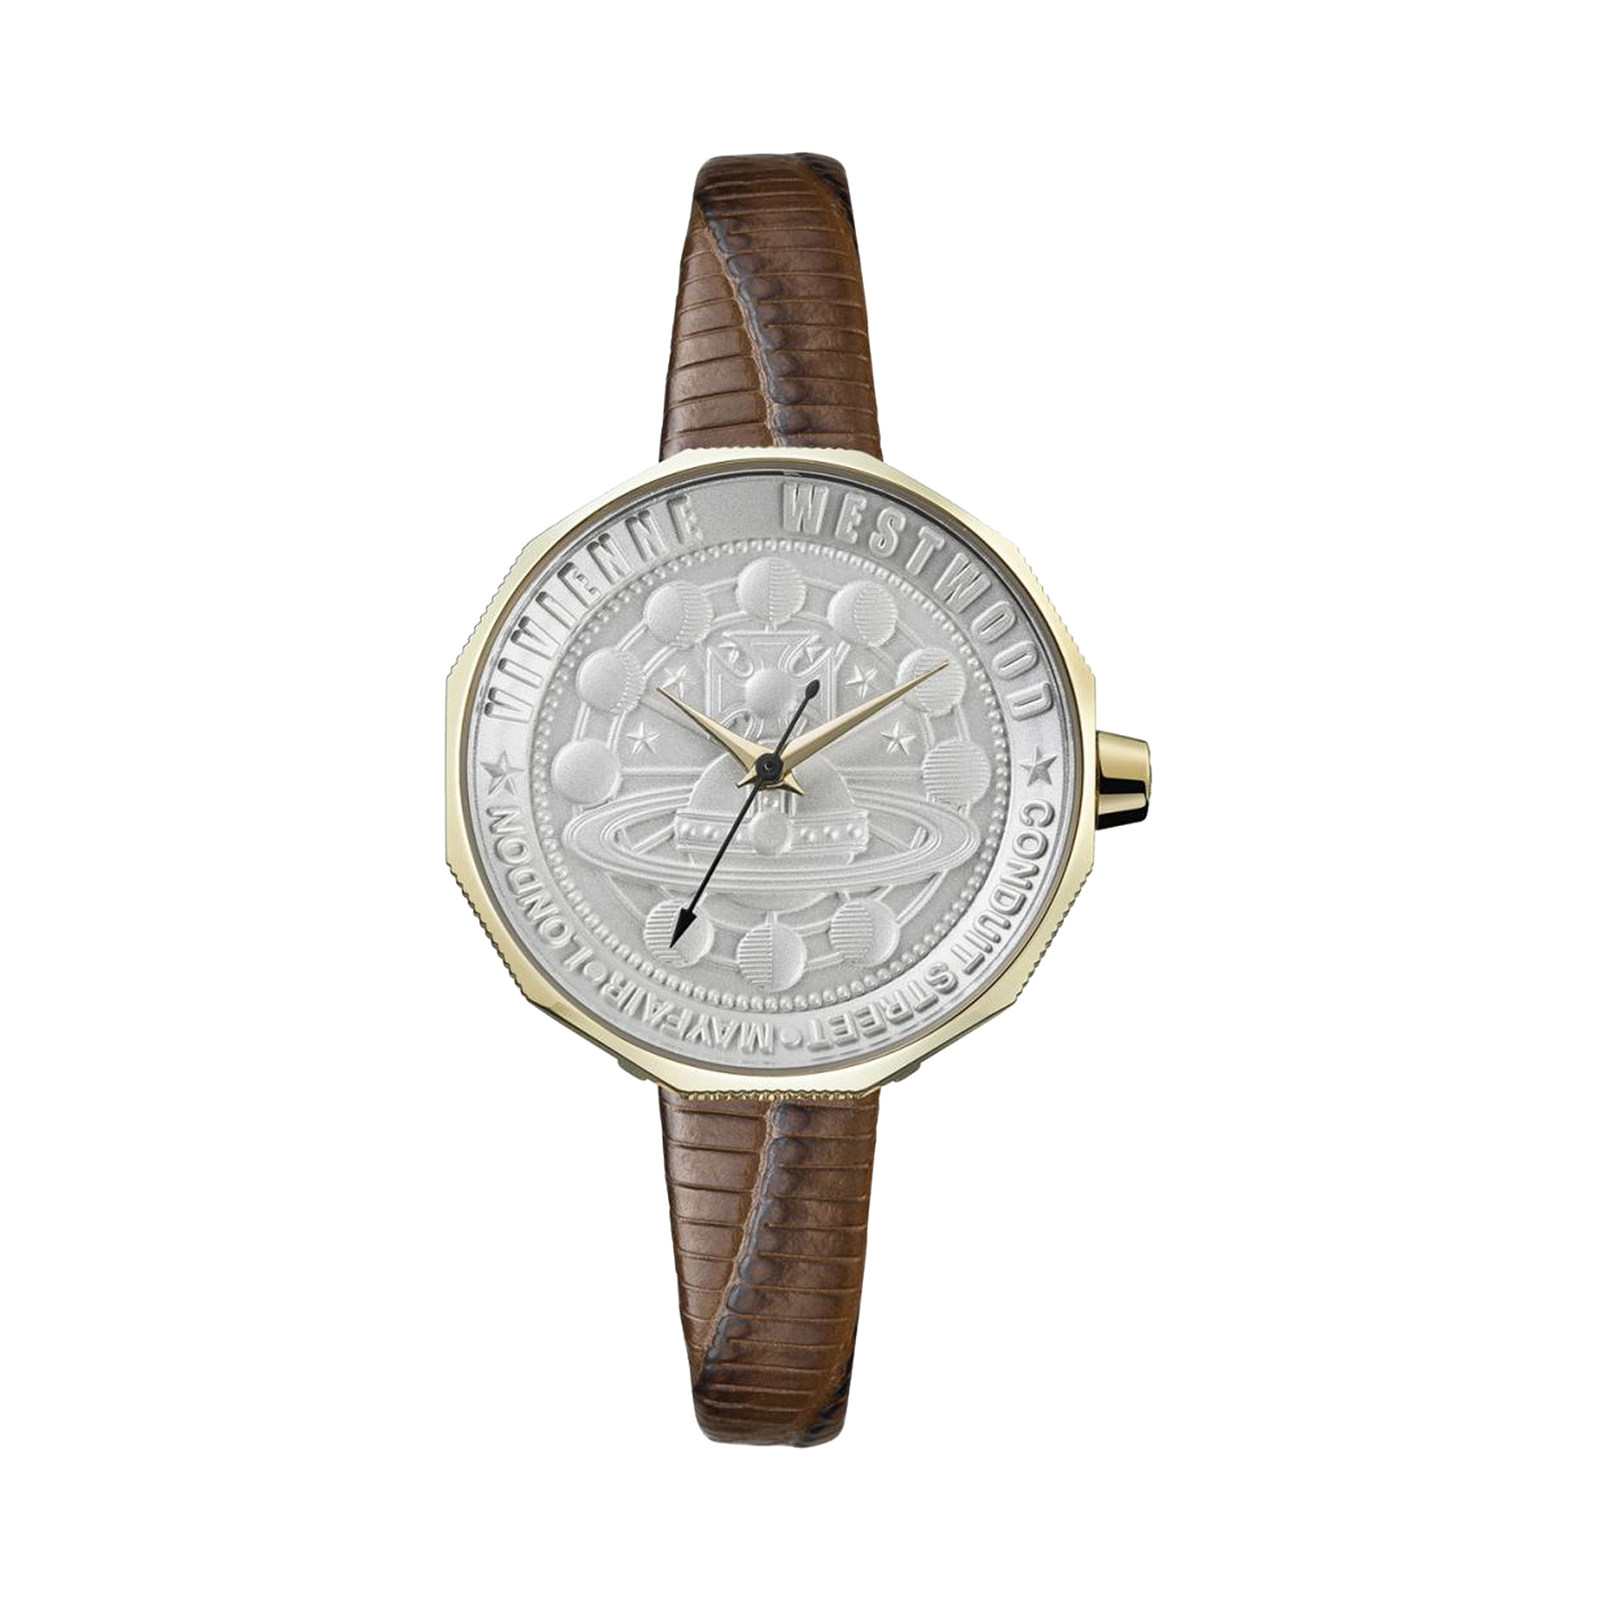 Vivienne Westwood VV171GDBR Ladies' Watch